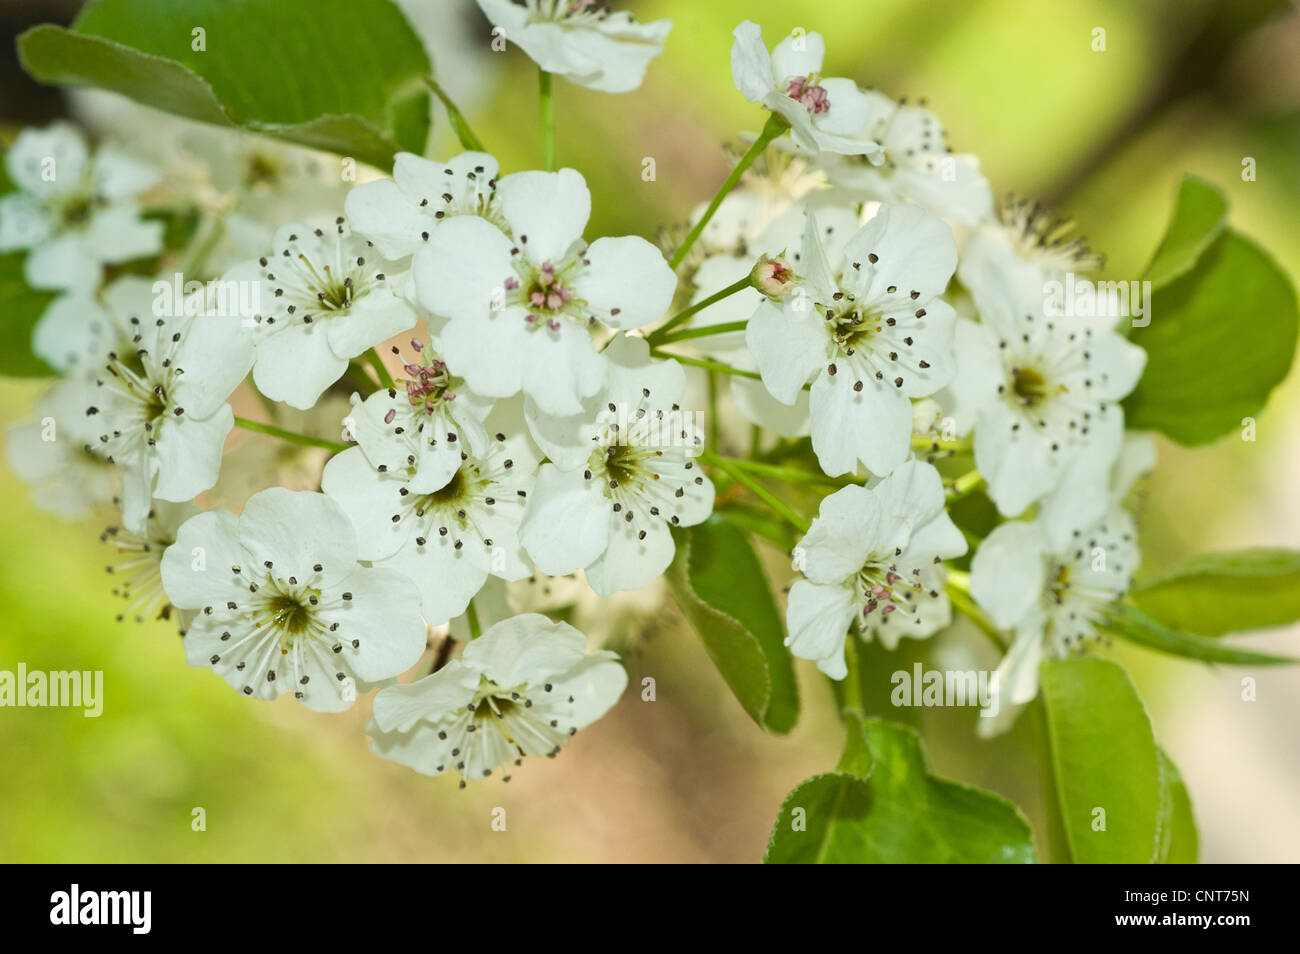 White Flowering Crabapple Image Collections Fresh Lotus Flowers